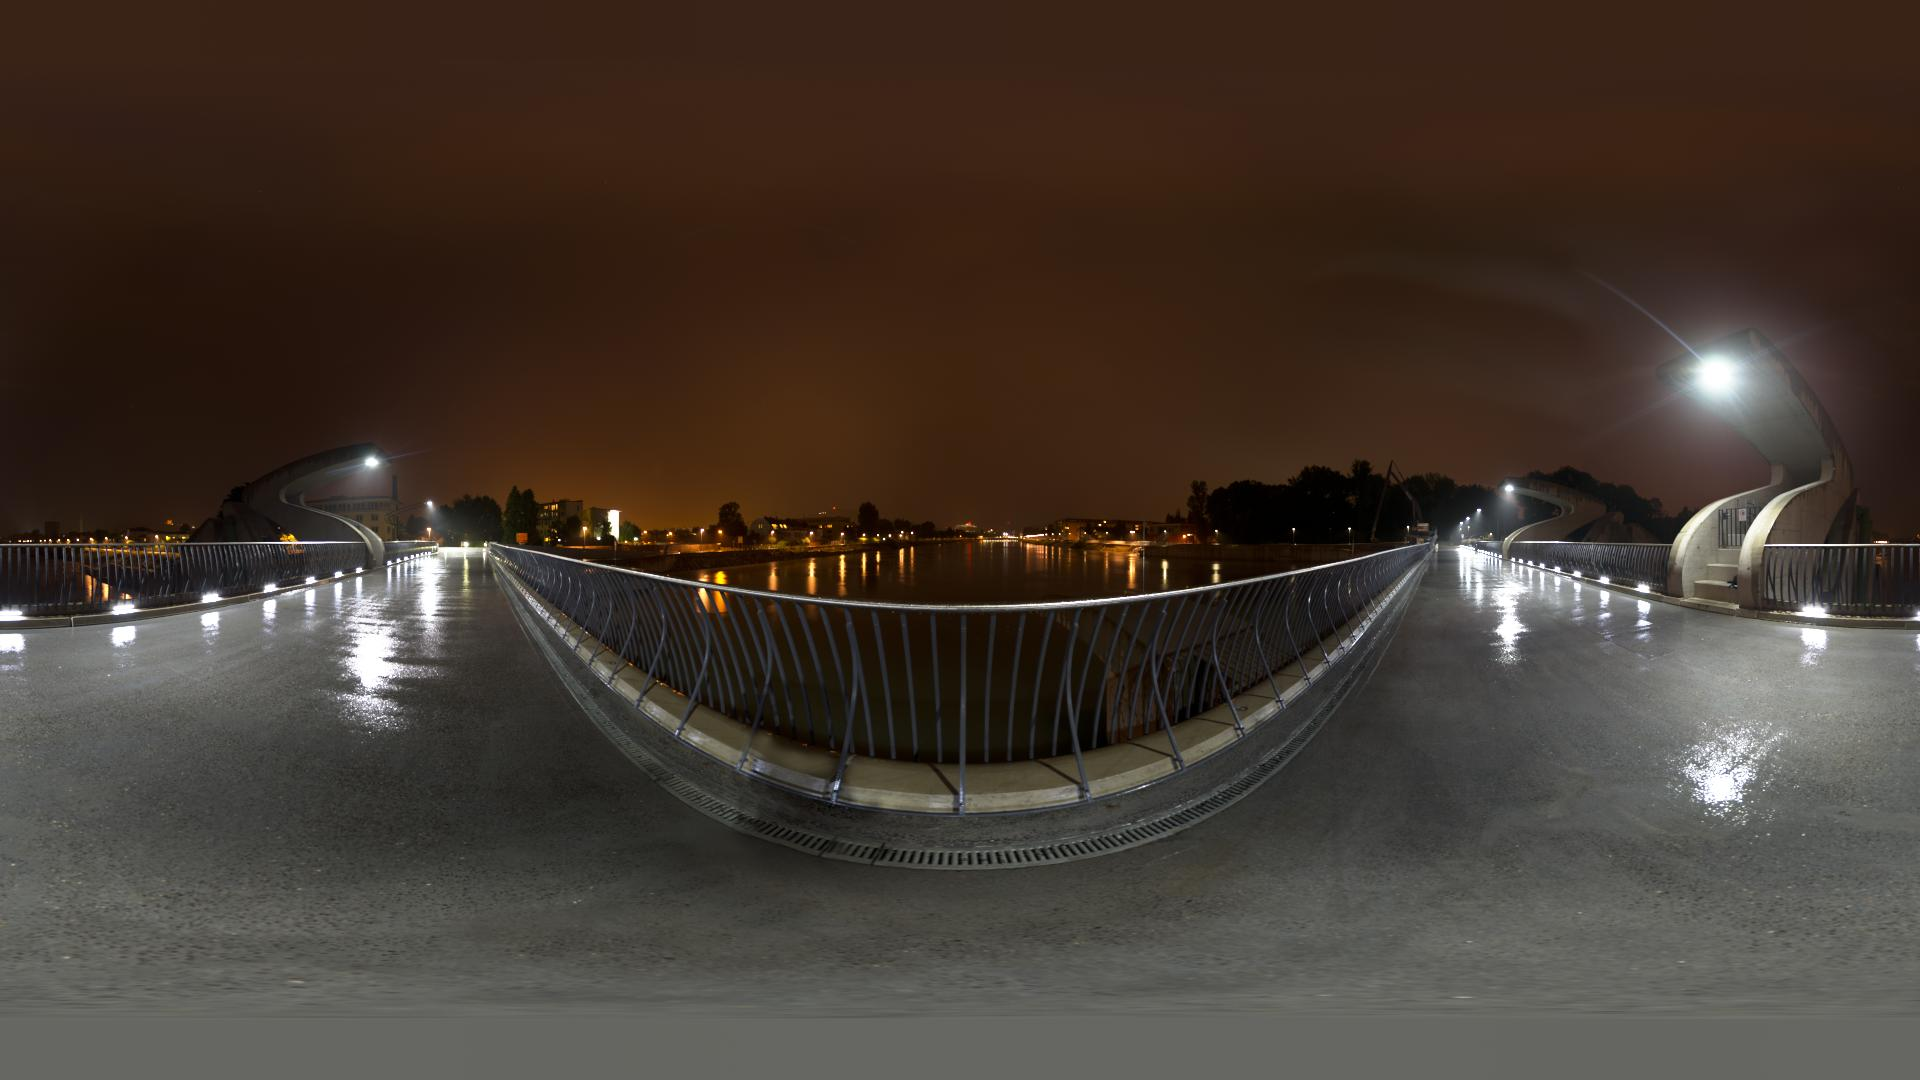 Hdri hdr of a river power station at night openfootage riverpowerstation hdri thecheapjerseys Image collections